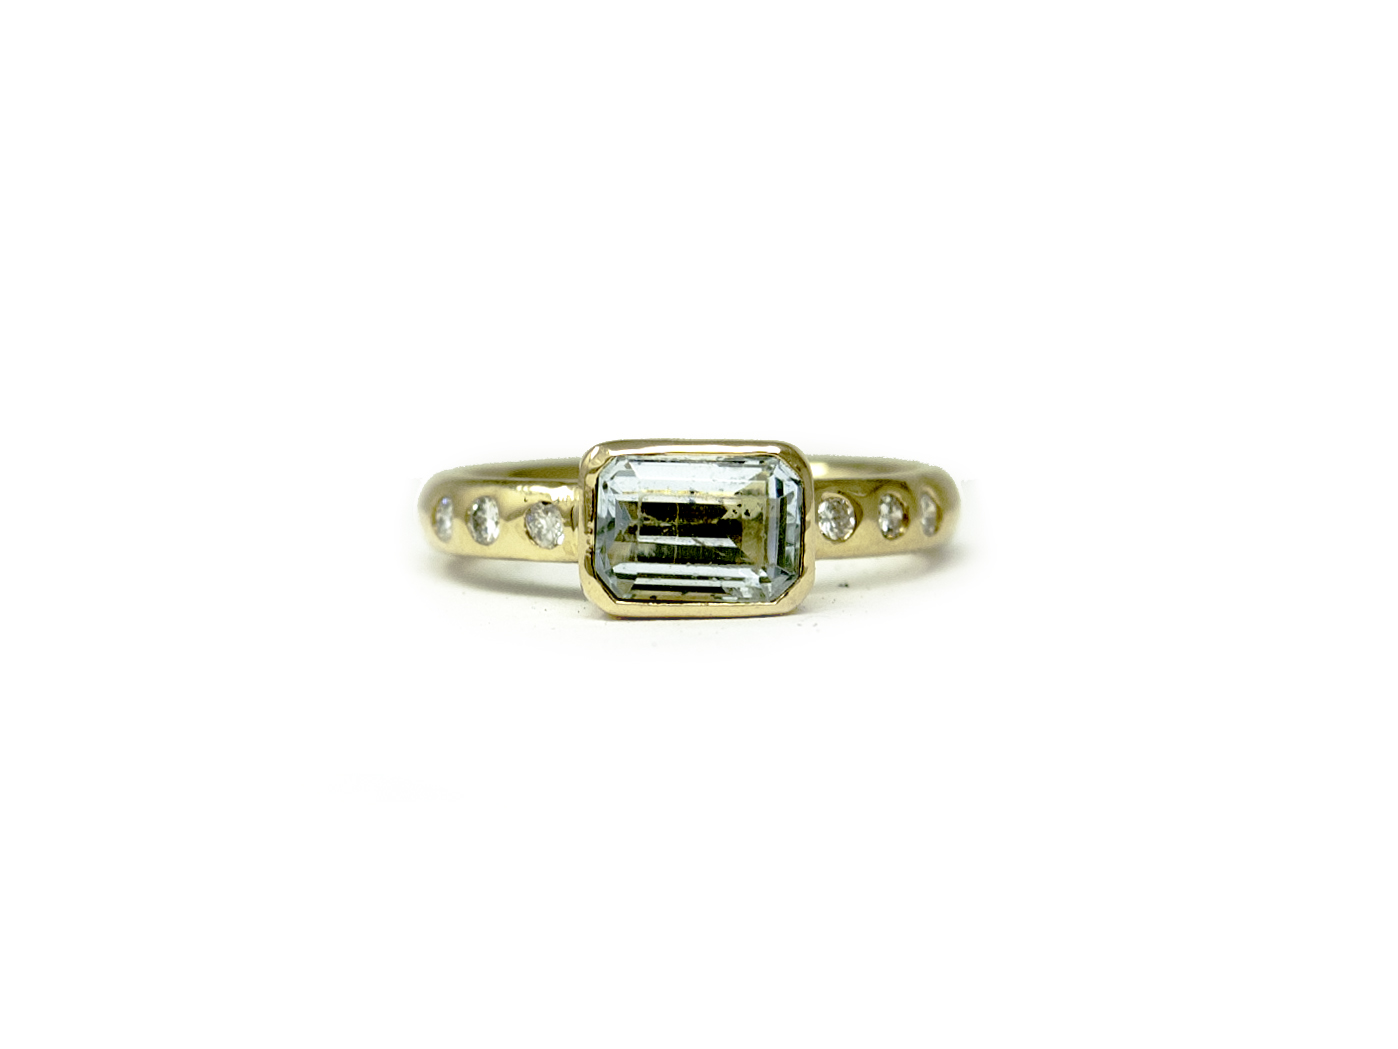 18kt gold houses this special heirloom aquamarine and white diamonds for Brittany's mother's day gift.